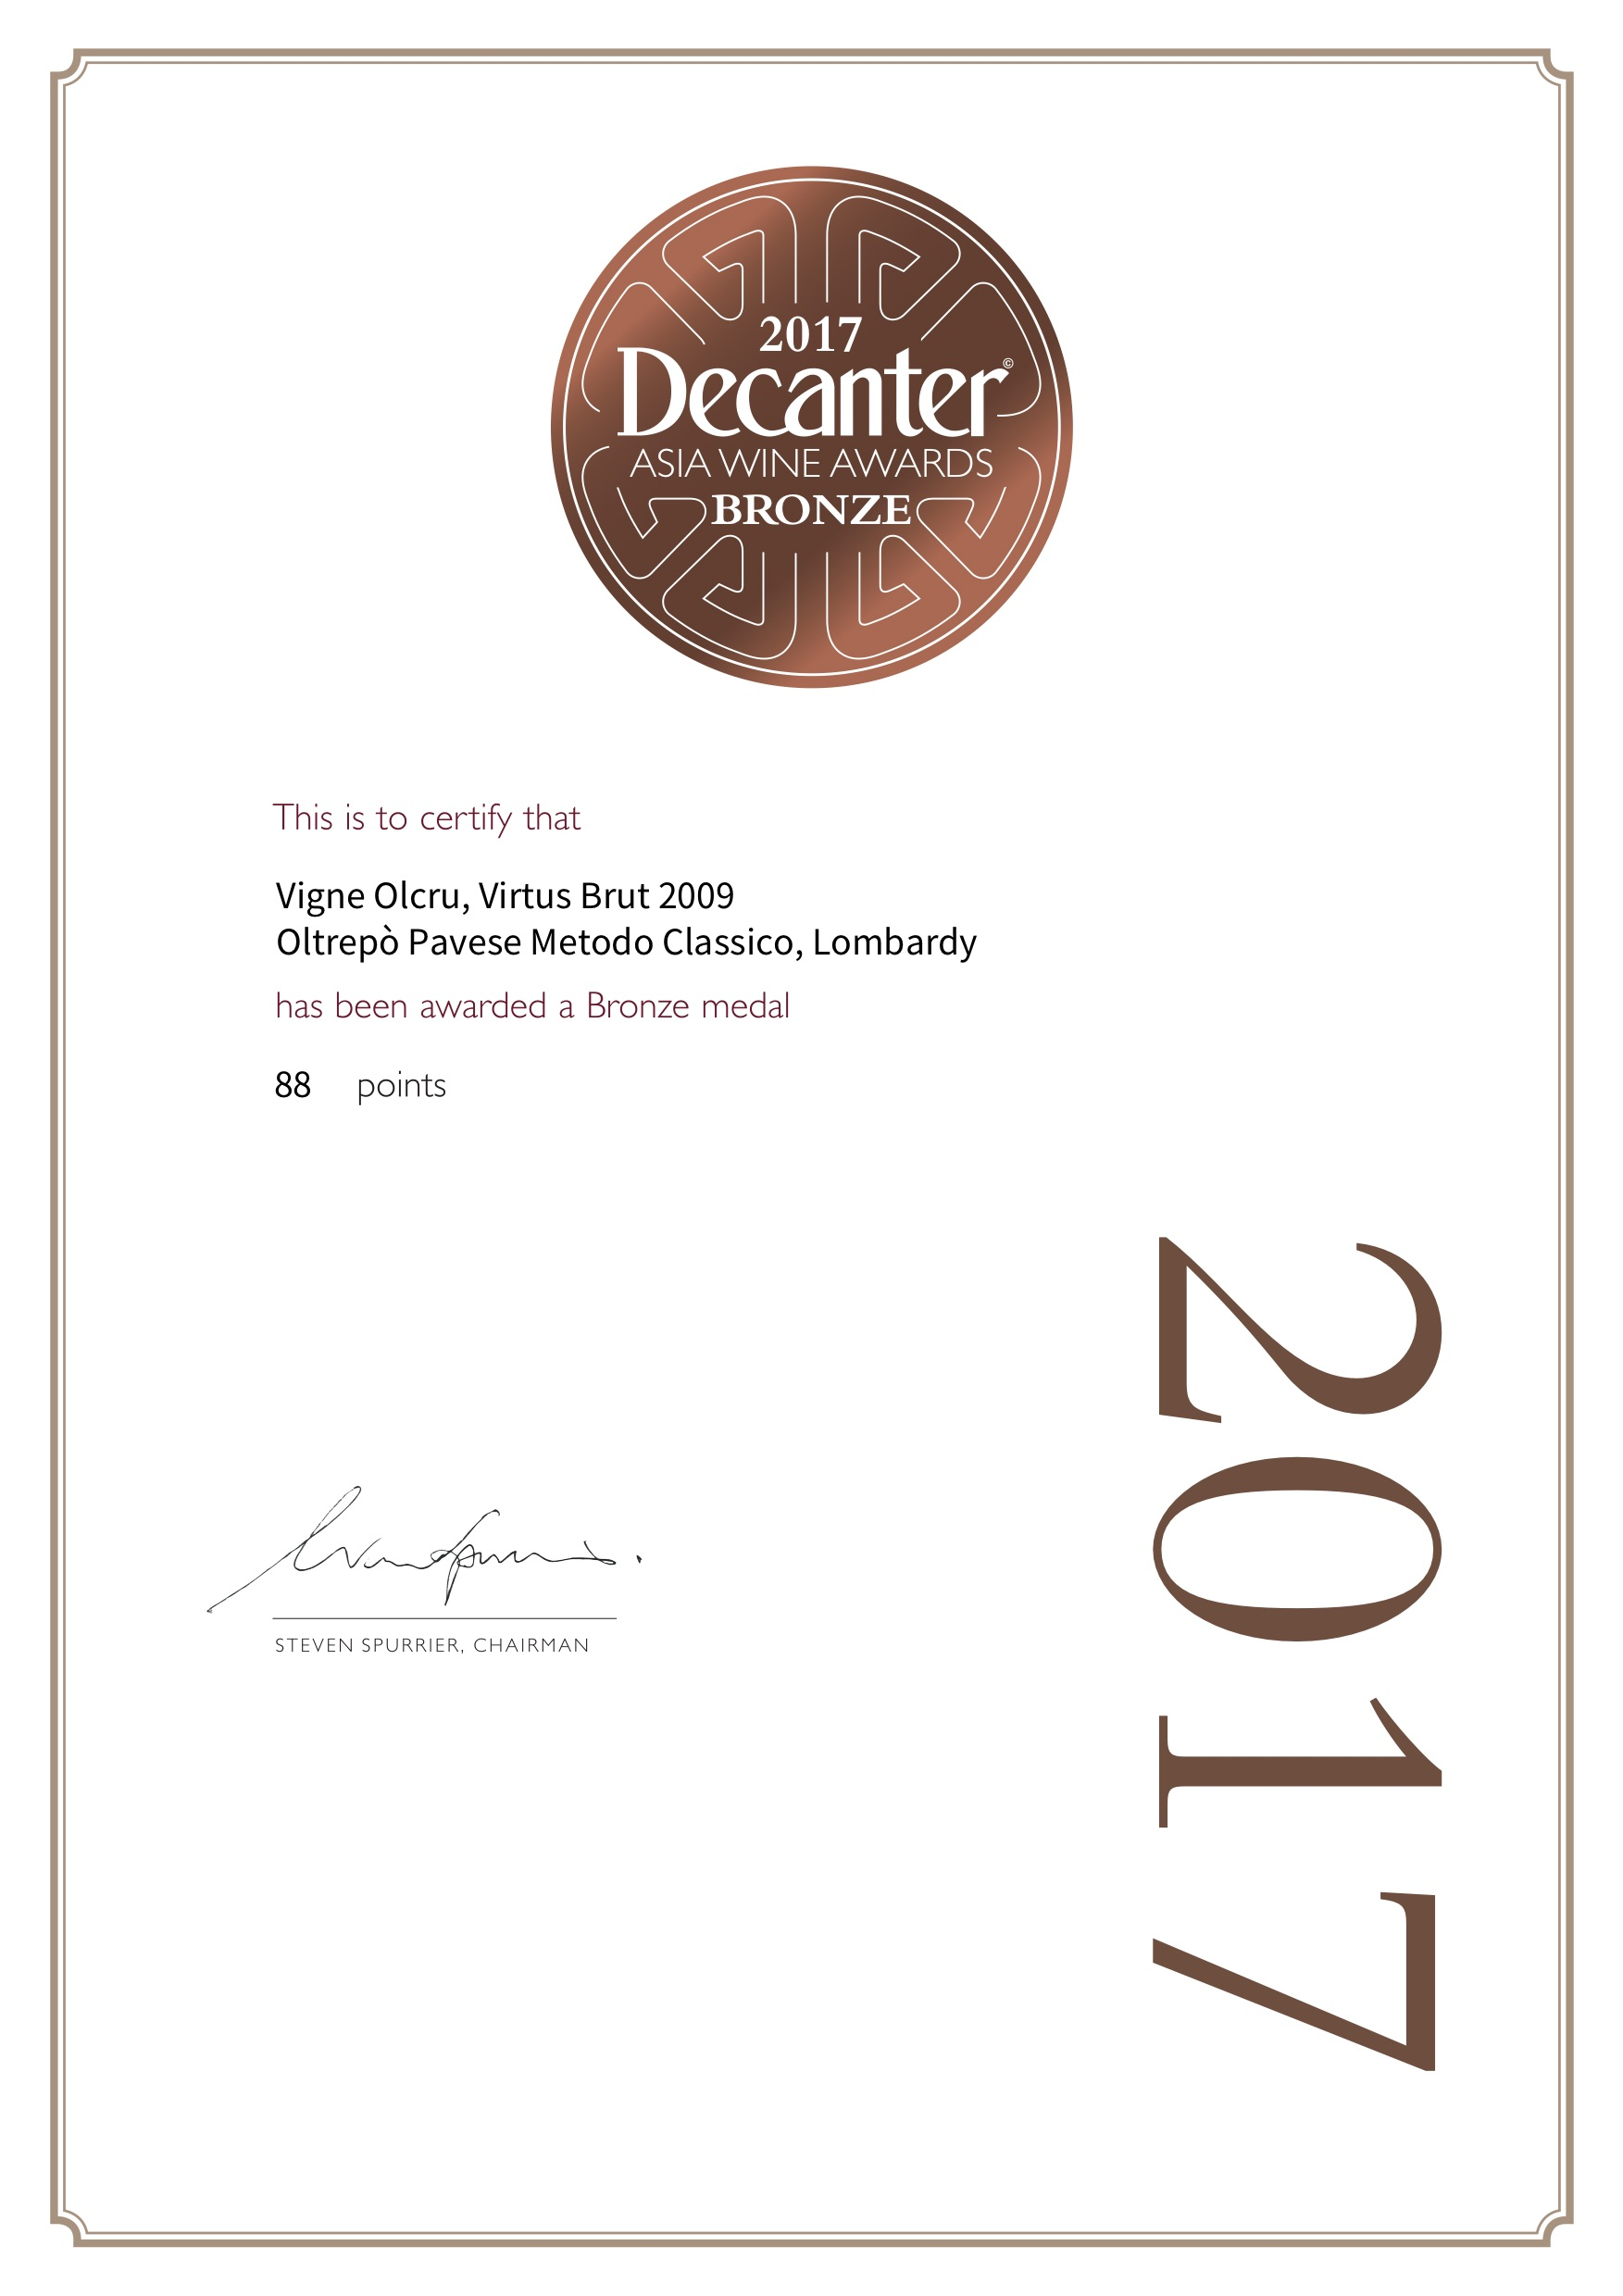 Decanter Asia 2017 Virtus 2009 Vigne Olcru